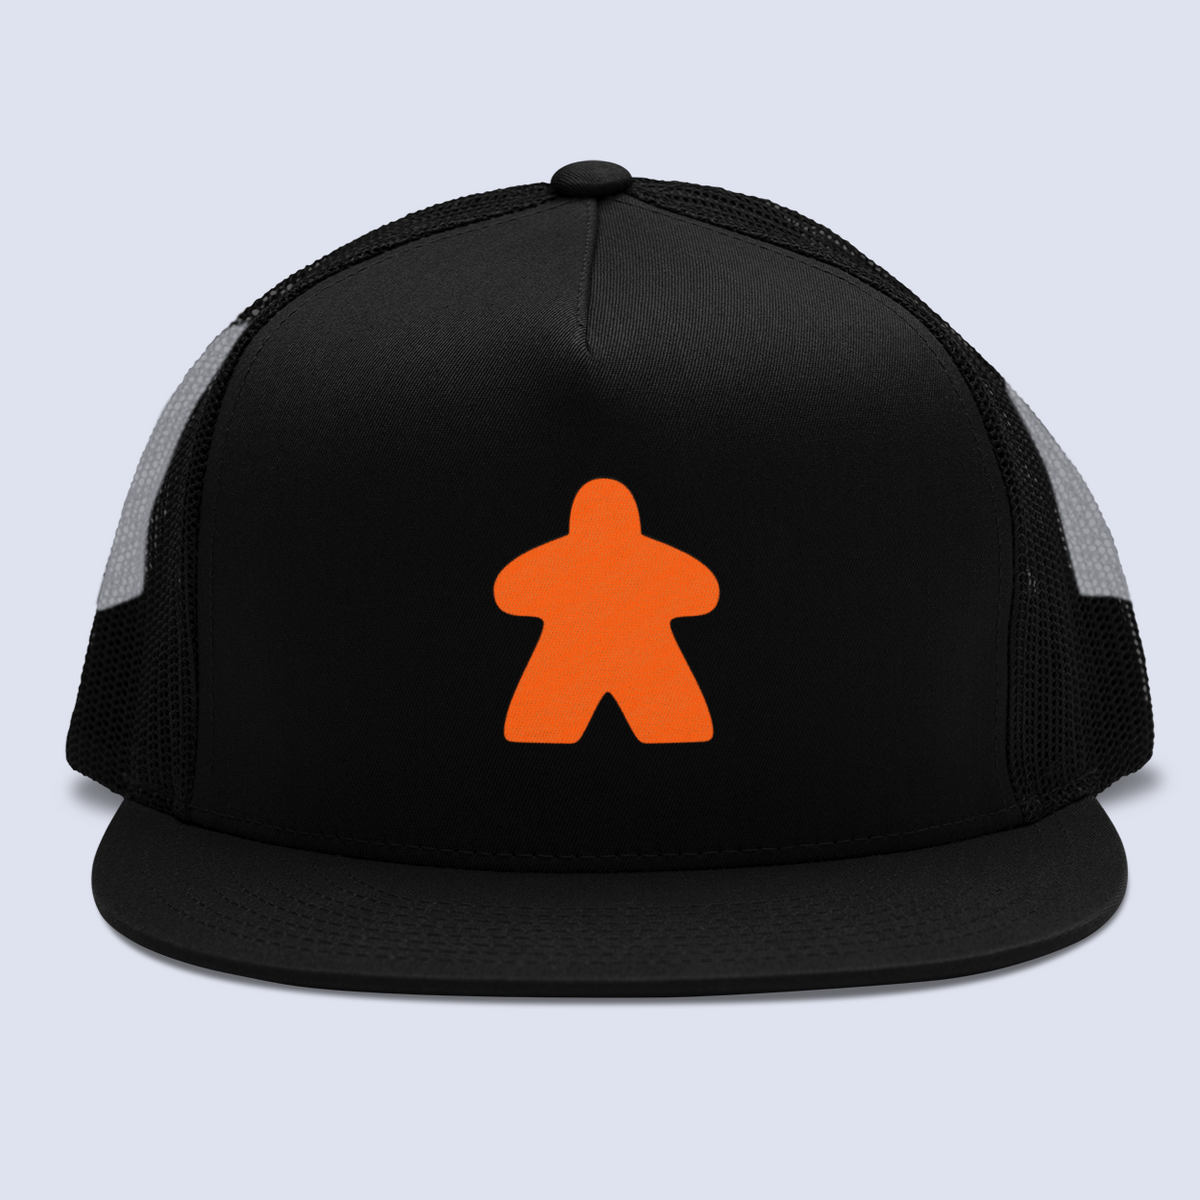 Orange Meeple Board Game Flat Bill Trucker Hat